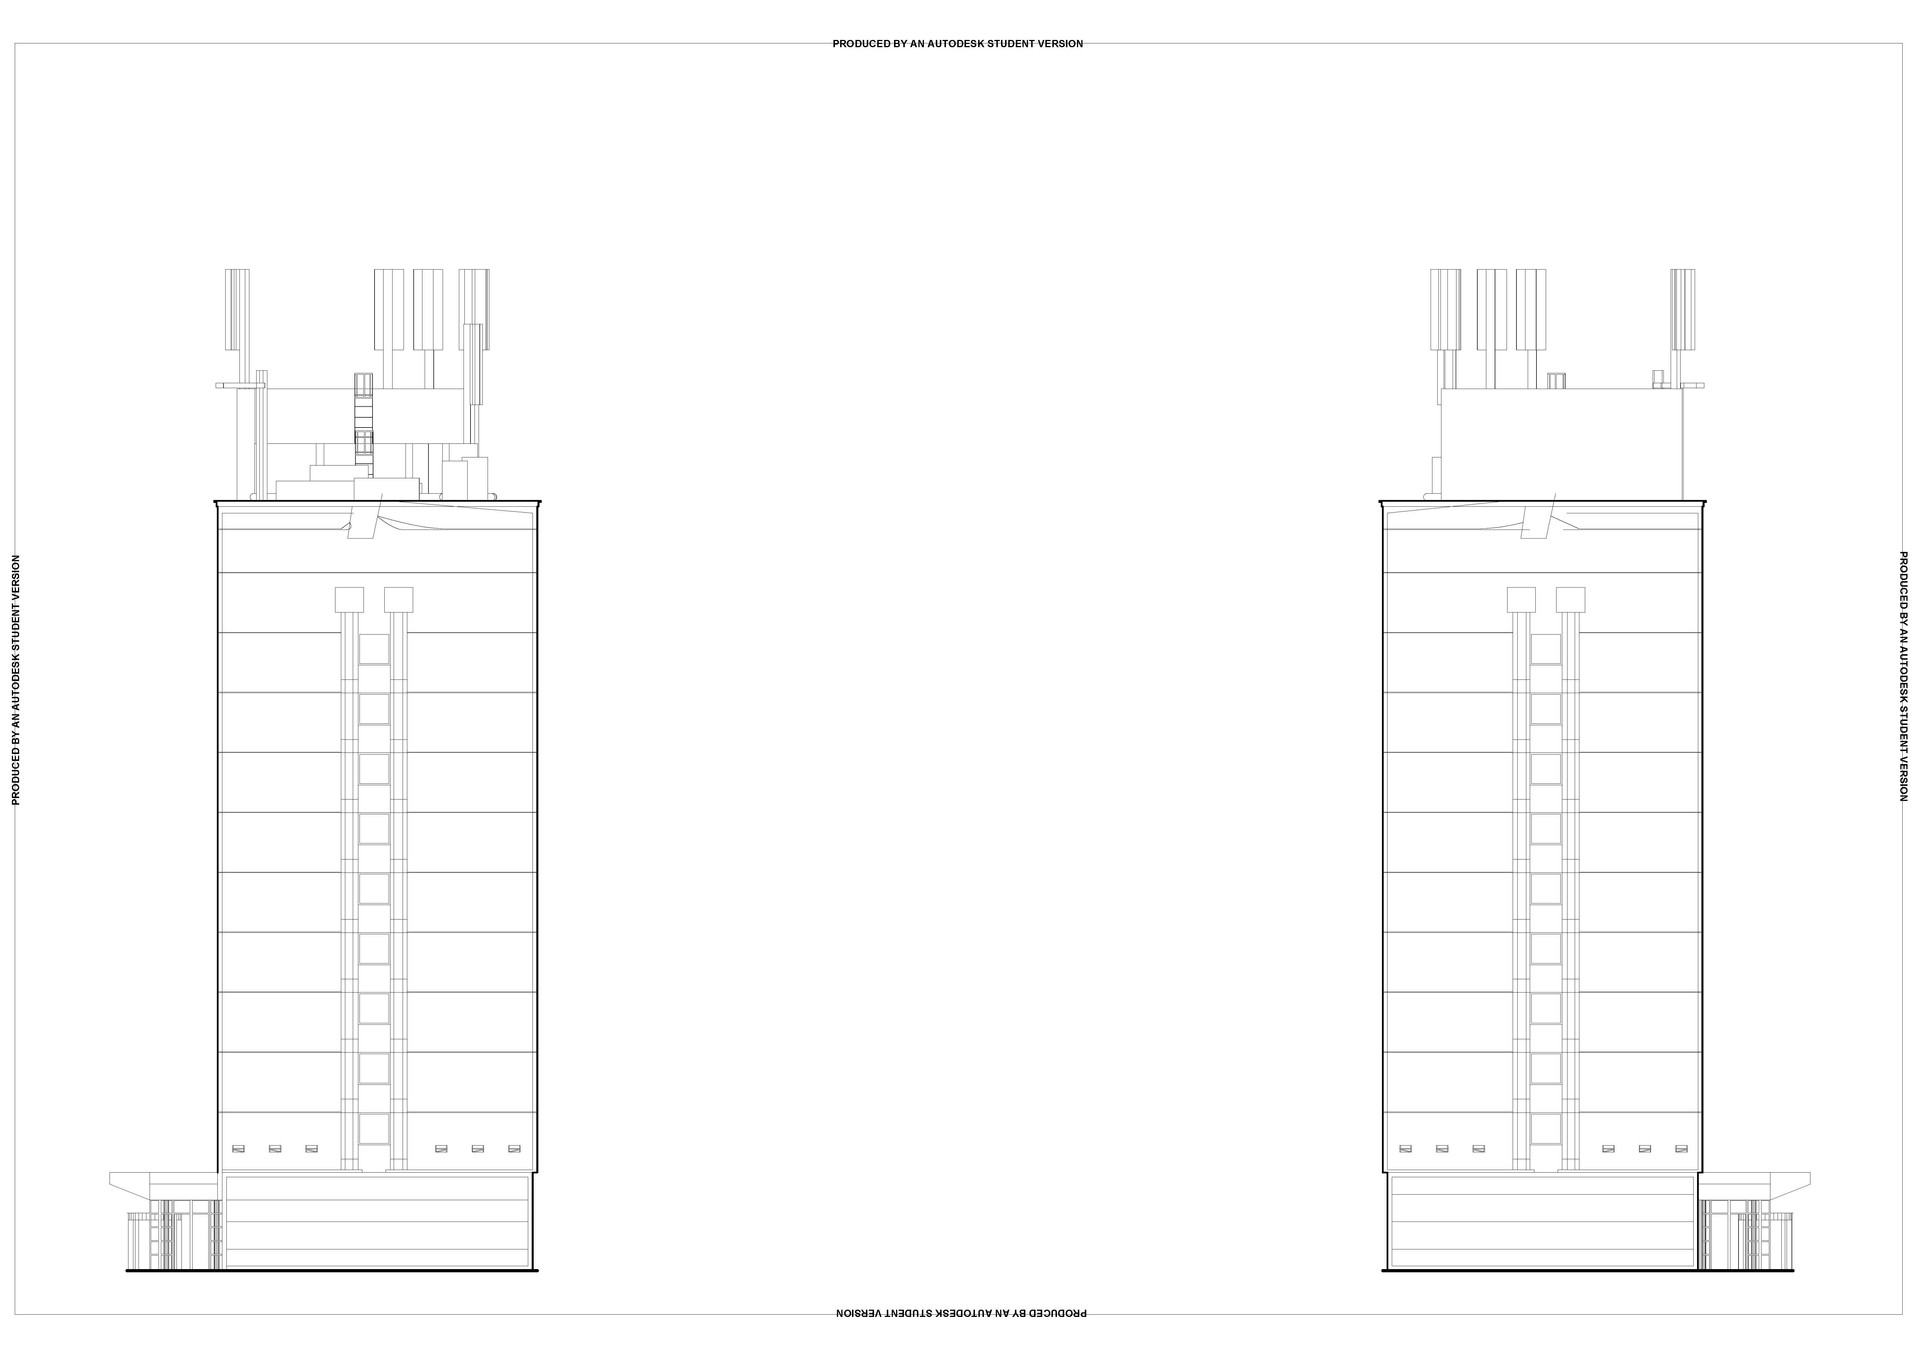 SIDE ELEVATIONS, 1:100